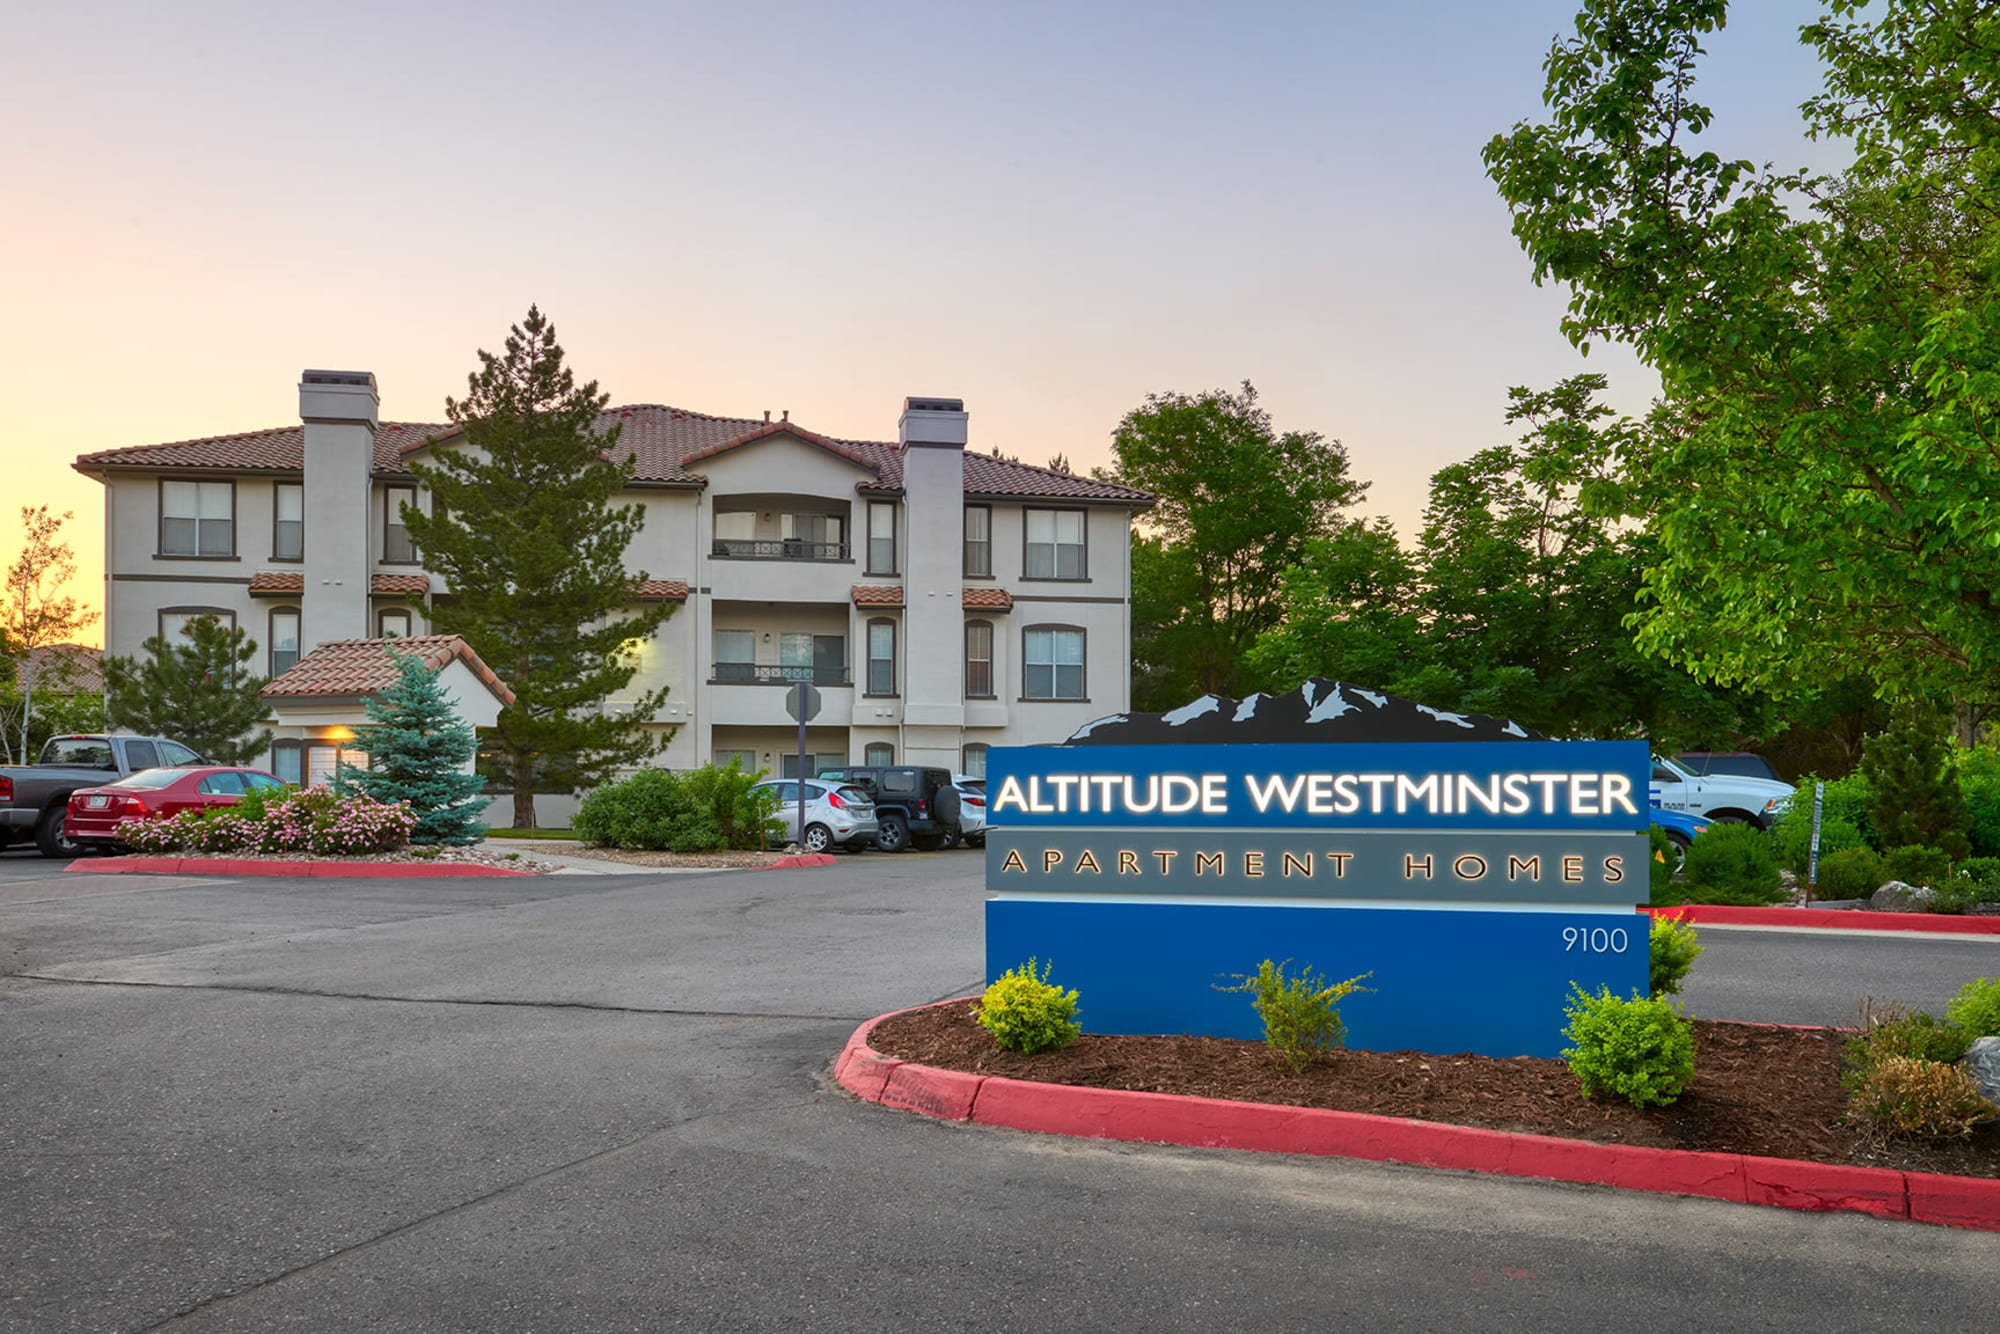 The monument sign in front of Altitude Westminster in Westminster, Colorado